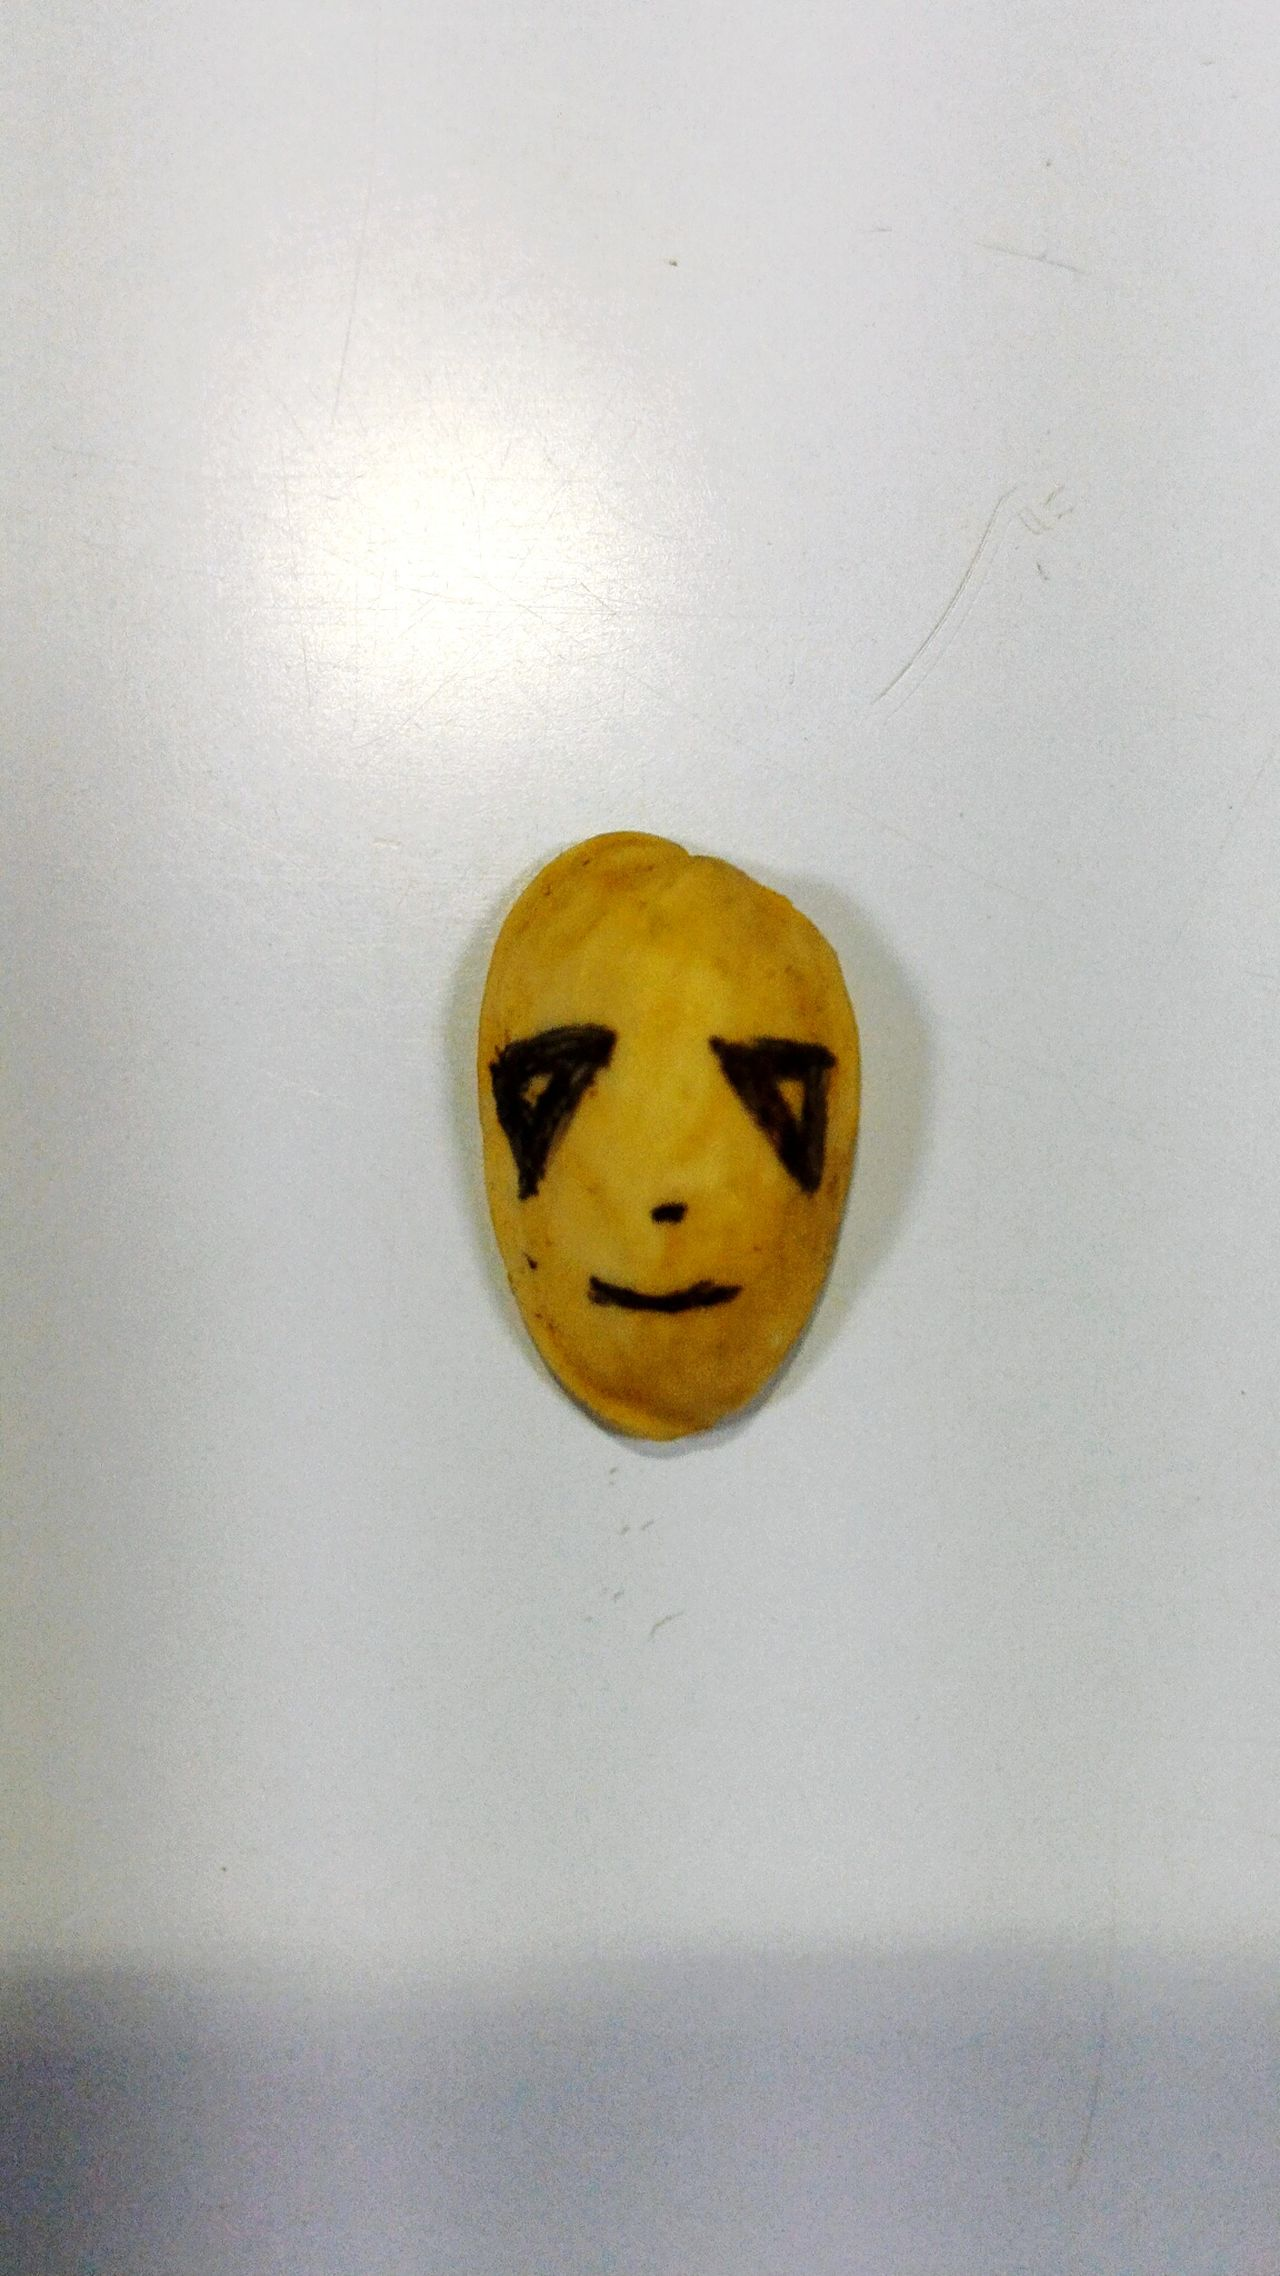 My right brain compelled me to do this creativity after having a pista Smiley Face Anthropomorphic Smiley Face No People Indoors  Close-up Anthropomorphic Day Pista Pistachio Pistachio Nuts Cover Foodart Food Hashim7s